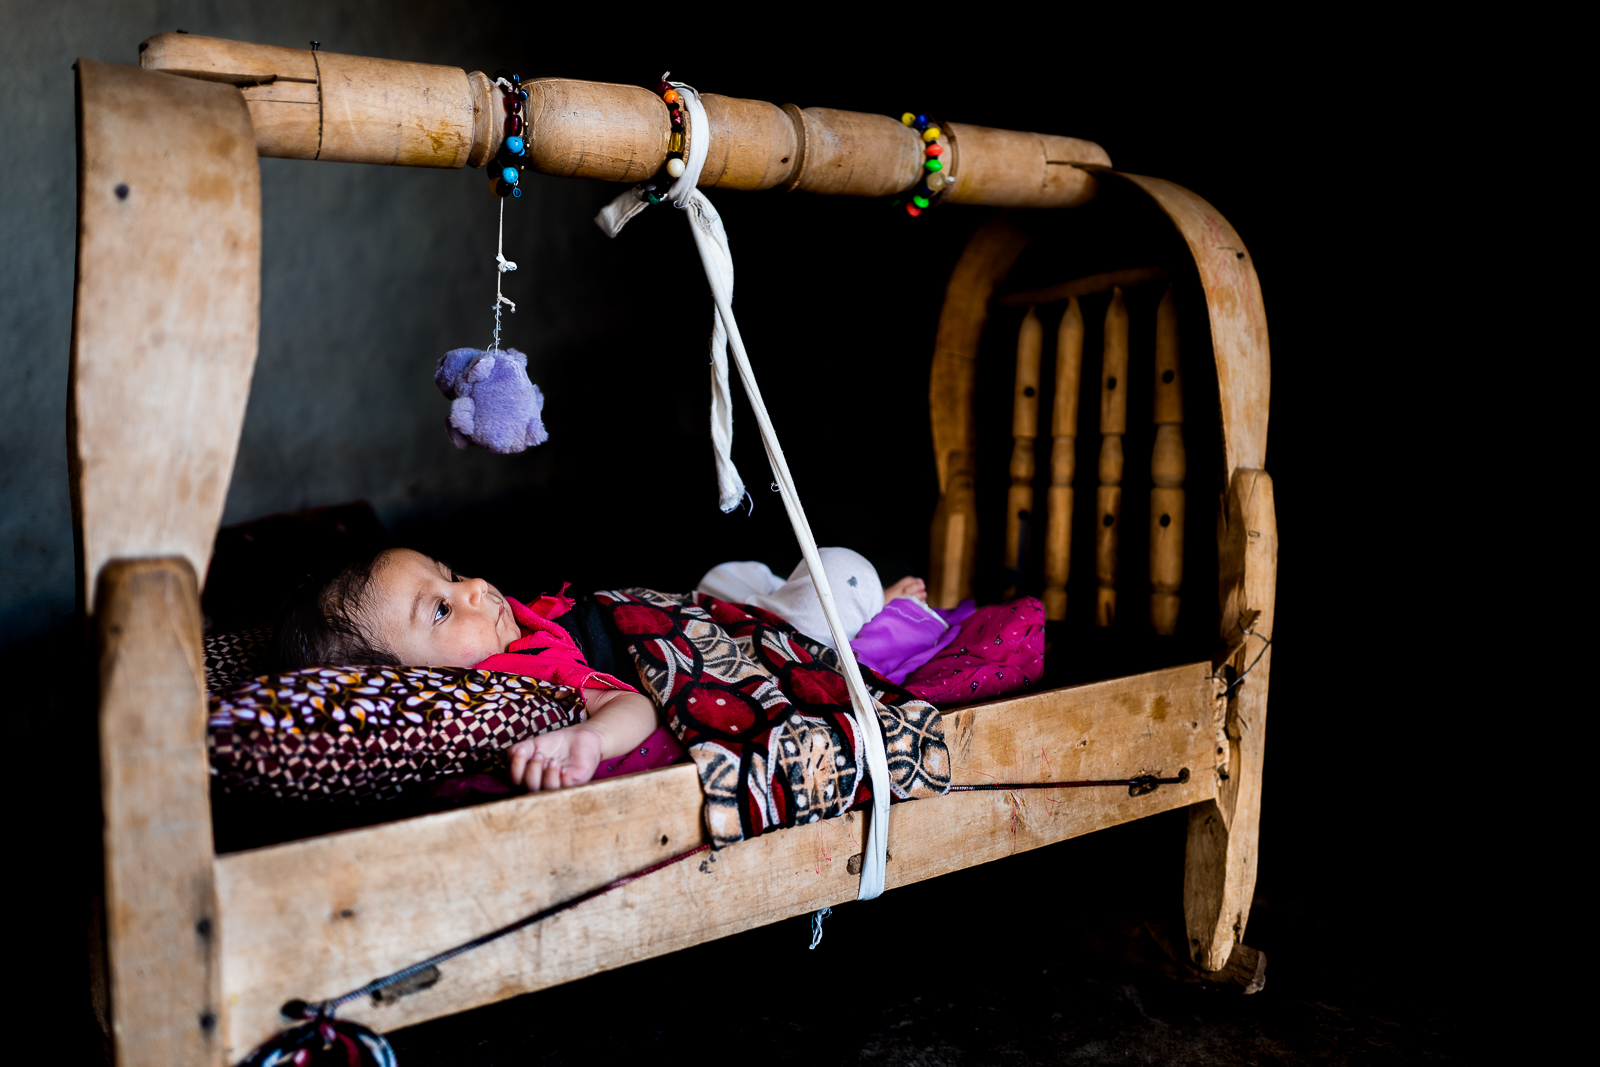 A young chil is sleeping in a unofficial camp in Sharya, near Dohuk